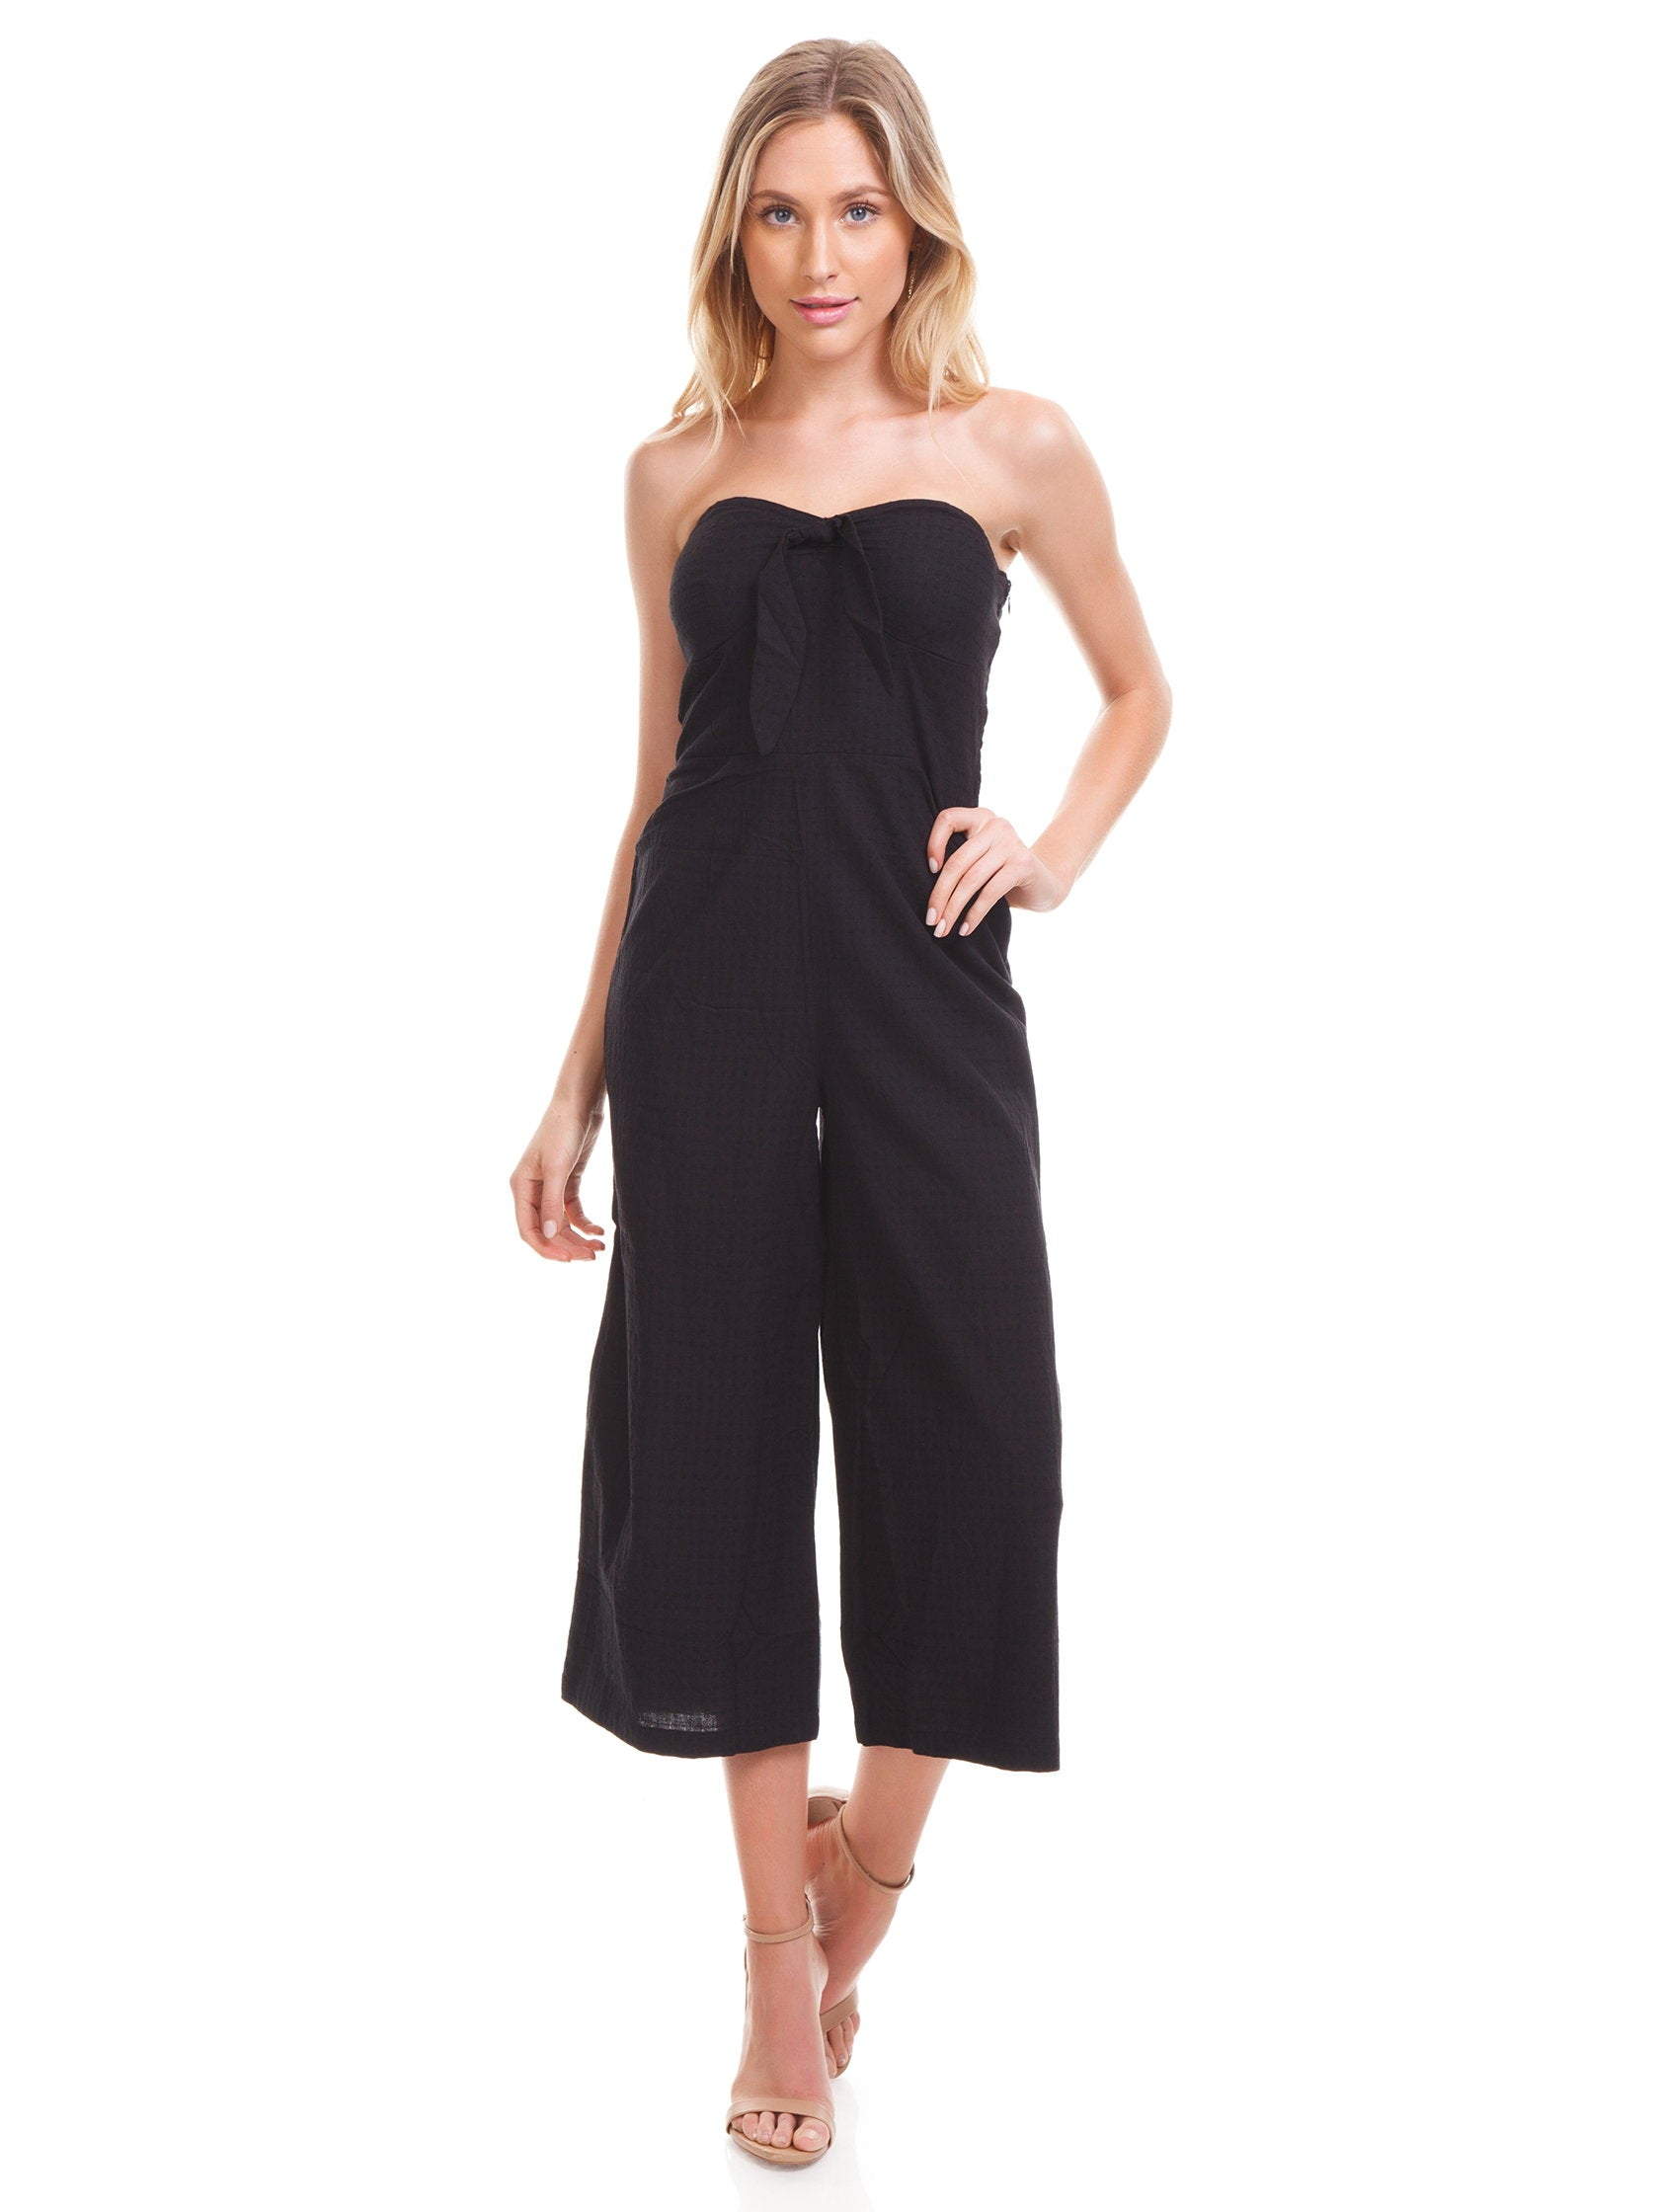 Girl outfit in a jumpsuit rental from MINKPINK called Say It Right Strapless Jumpsuit